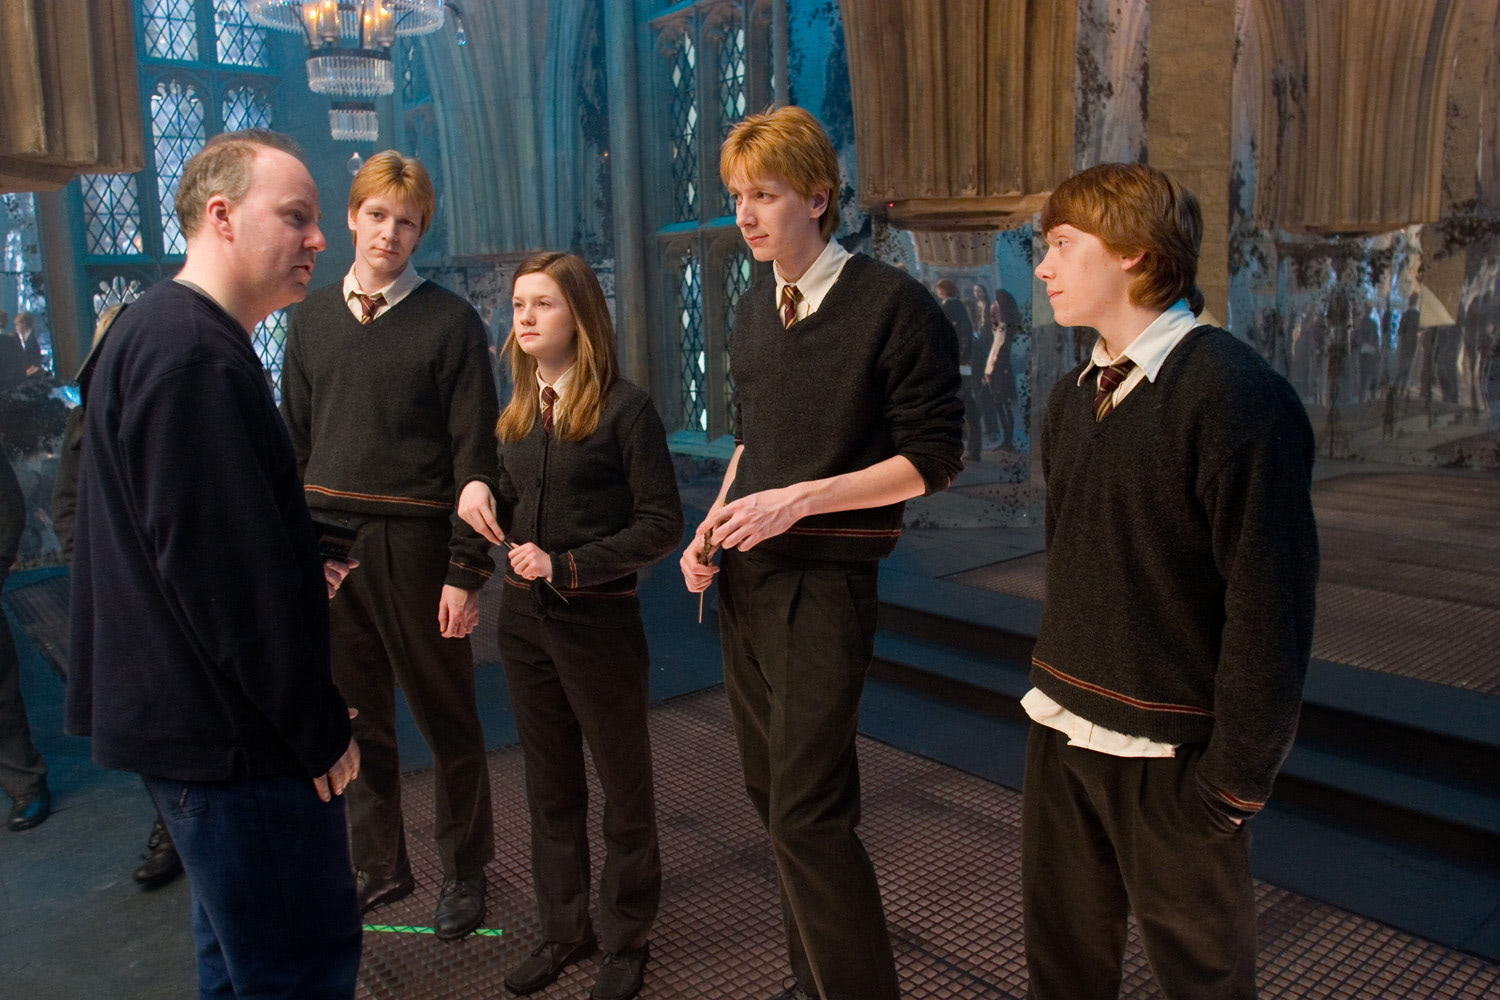 David Yates directing in the Room of Requirement